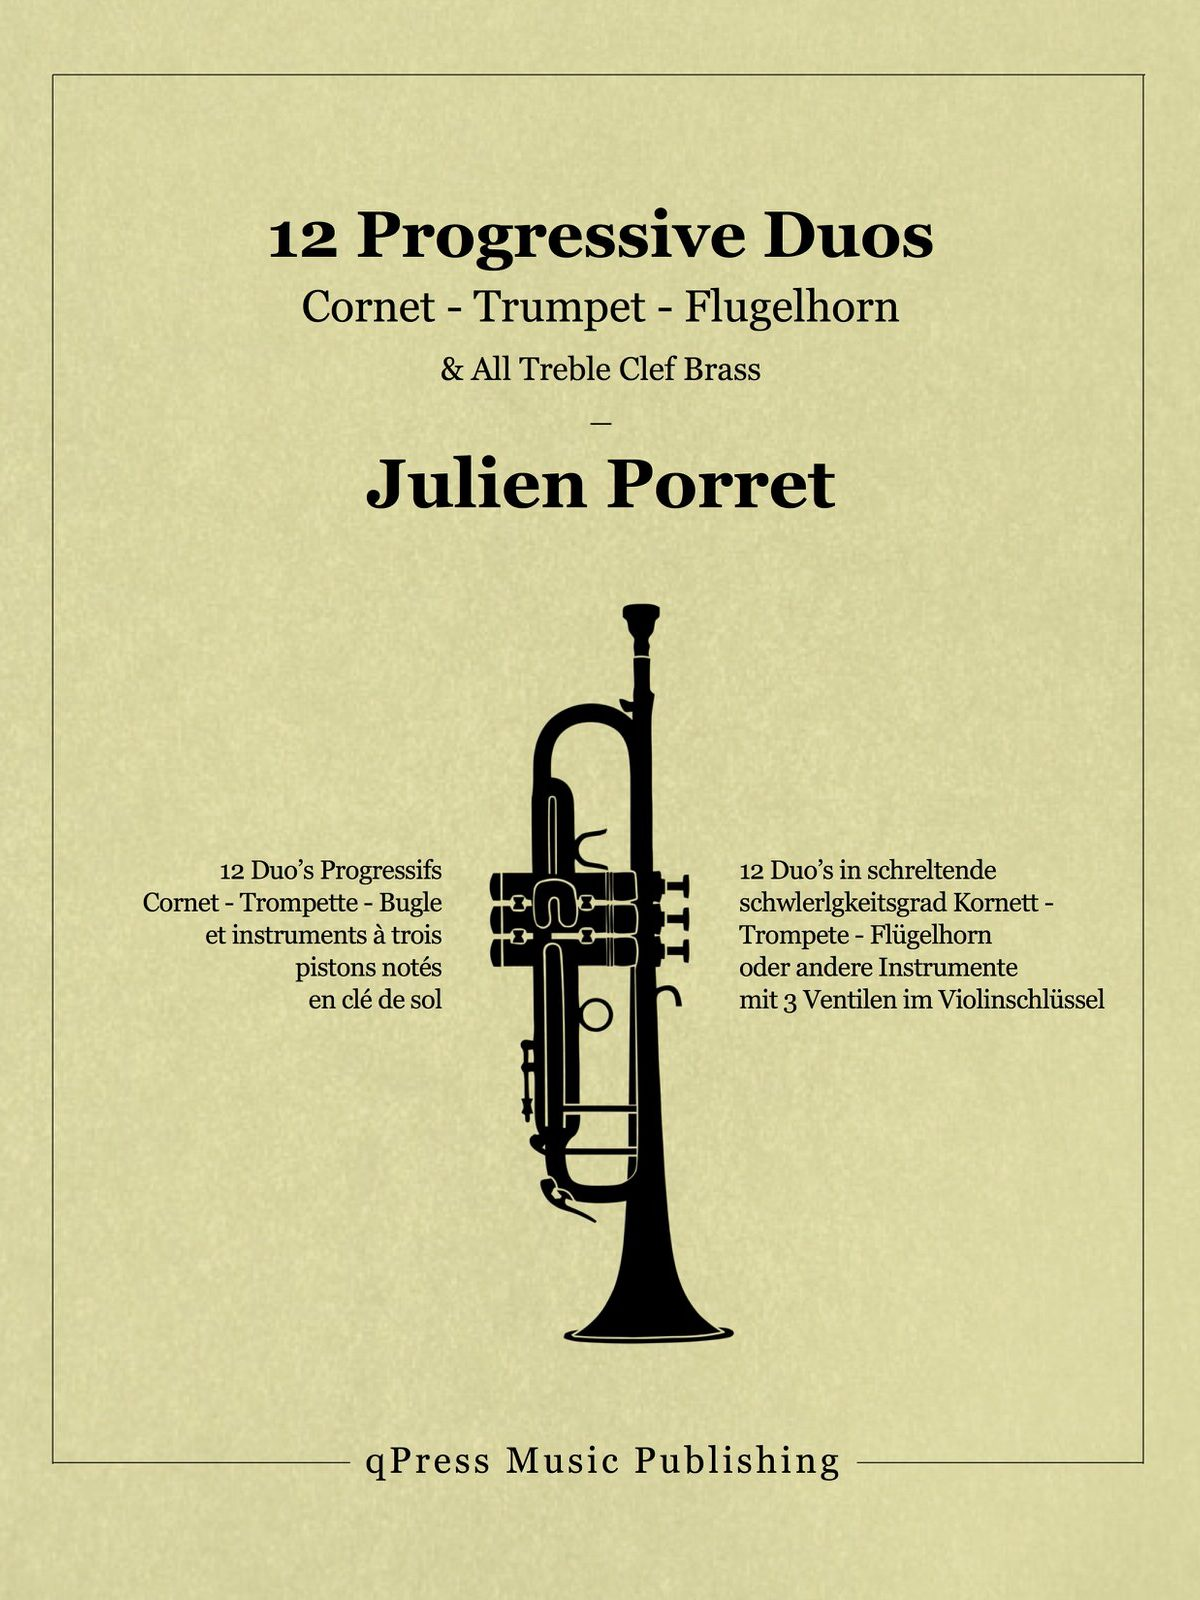 Porret, Julien, 12 Progressive Duos for Trumpet-p01